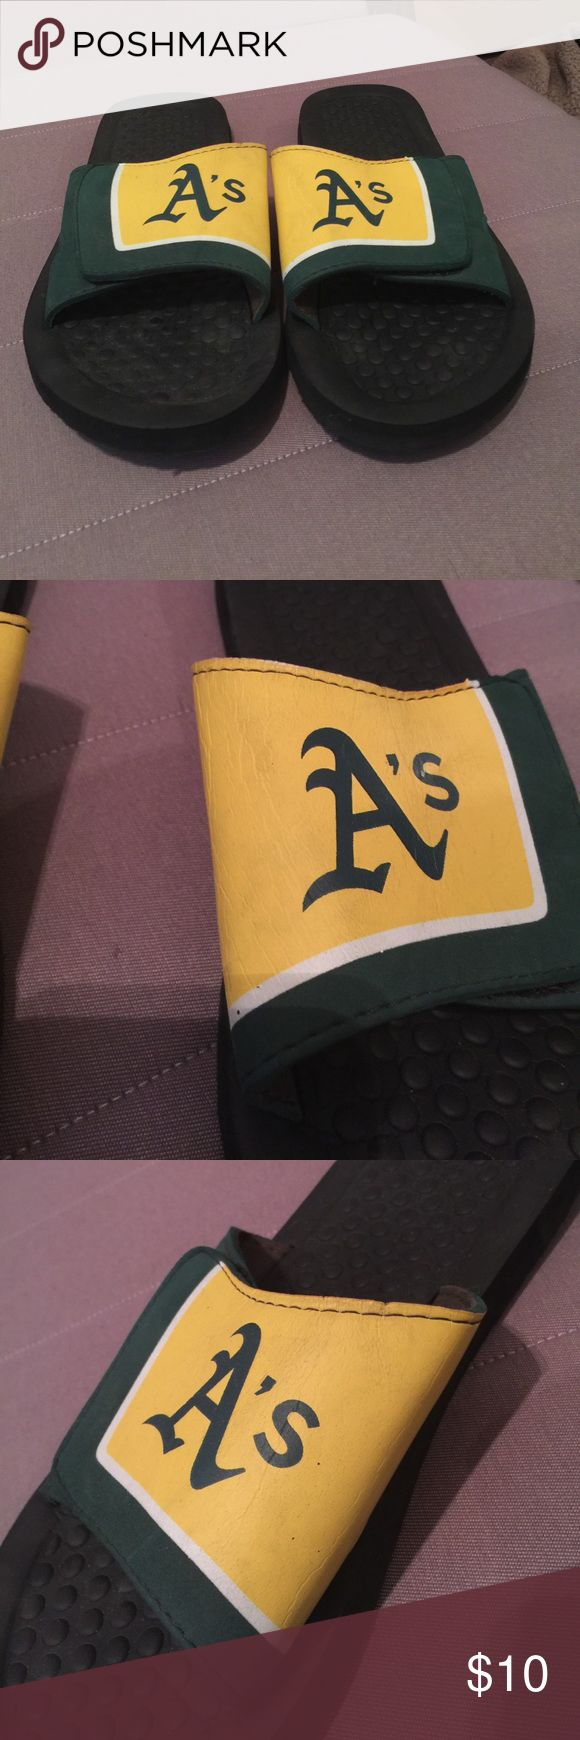 Oakland Athletic's flip flops Oakland Athletic's flip flops (sliders) slightly worn (see second and third pictures) Shoes Sandals & Flip-Flops